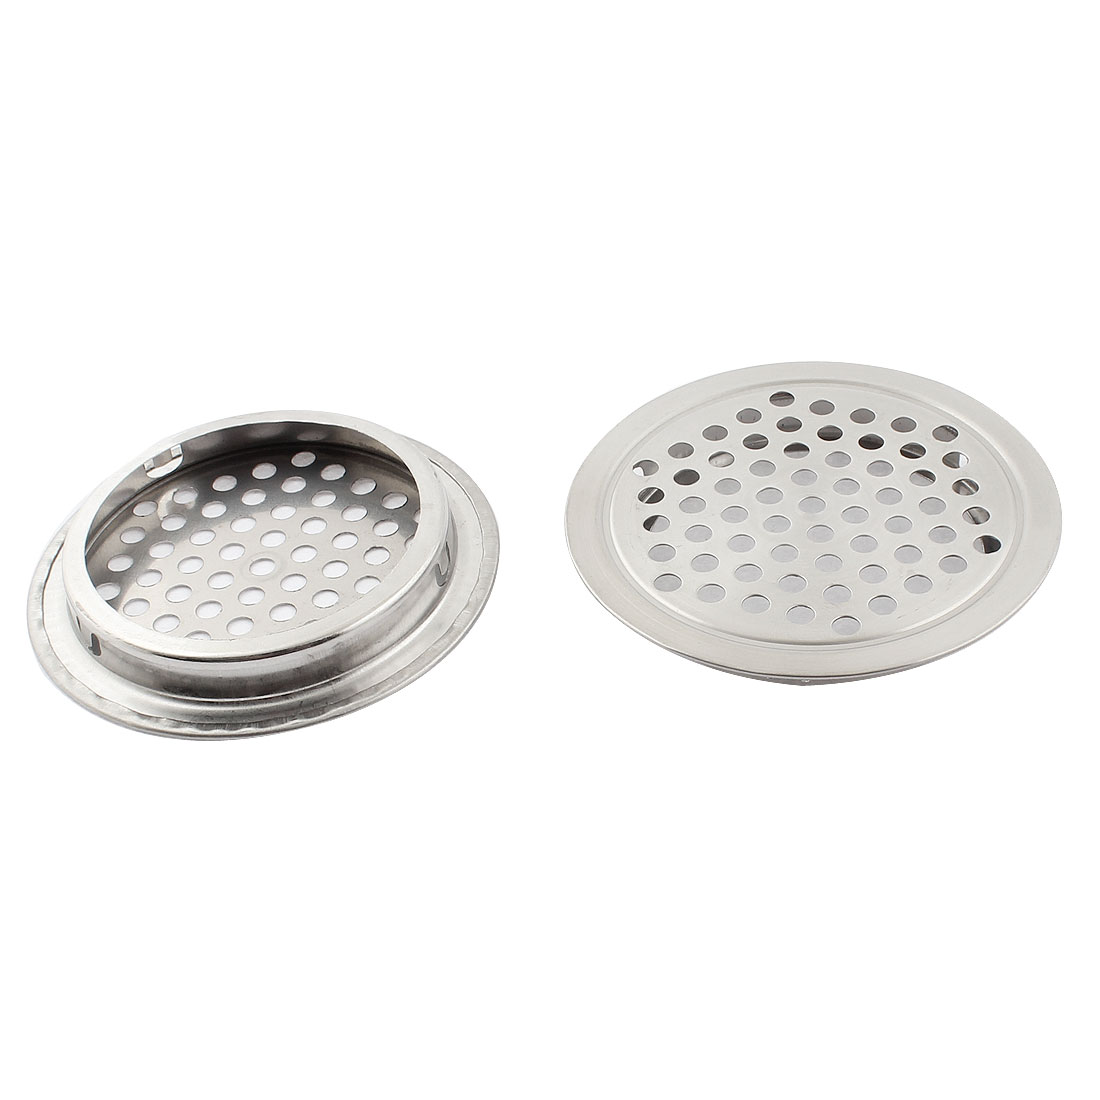 Kitchen 65mm Dia Round Metal Mesh Hole Air Vent Louver Cover Silver Tone 2pcs